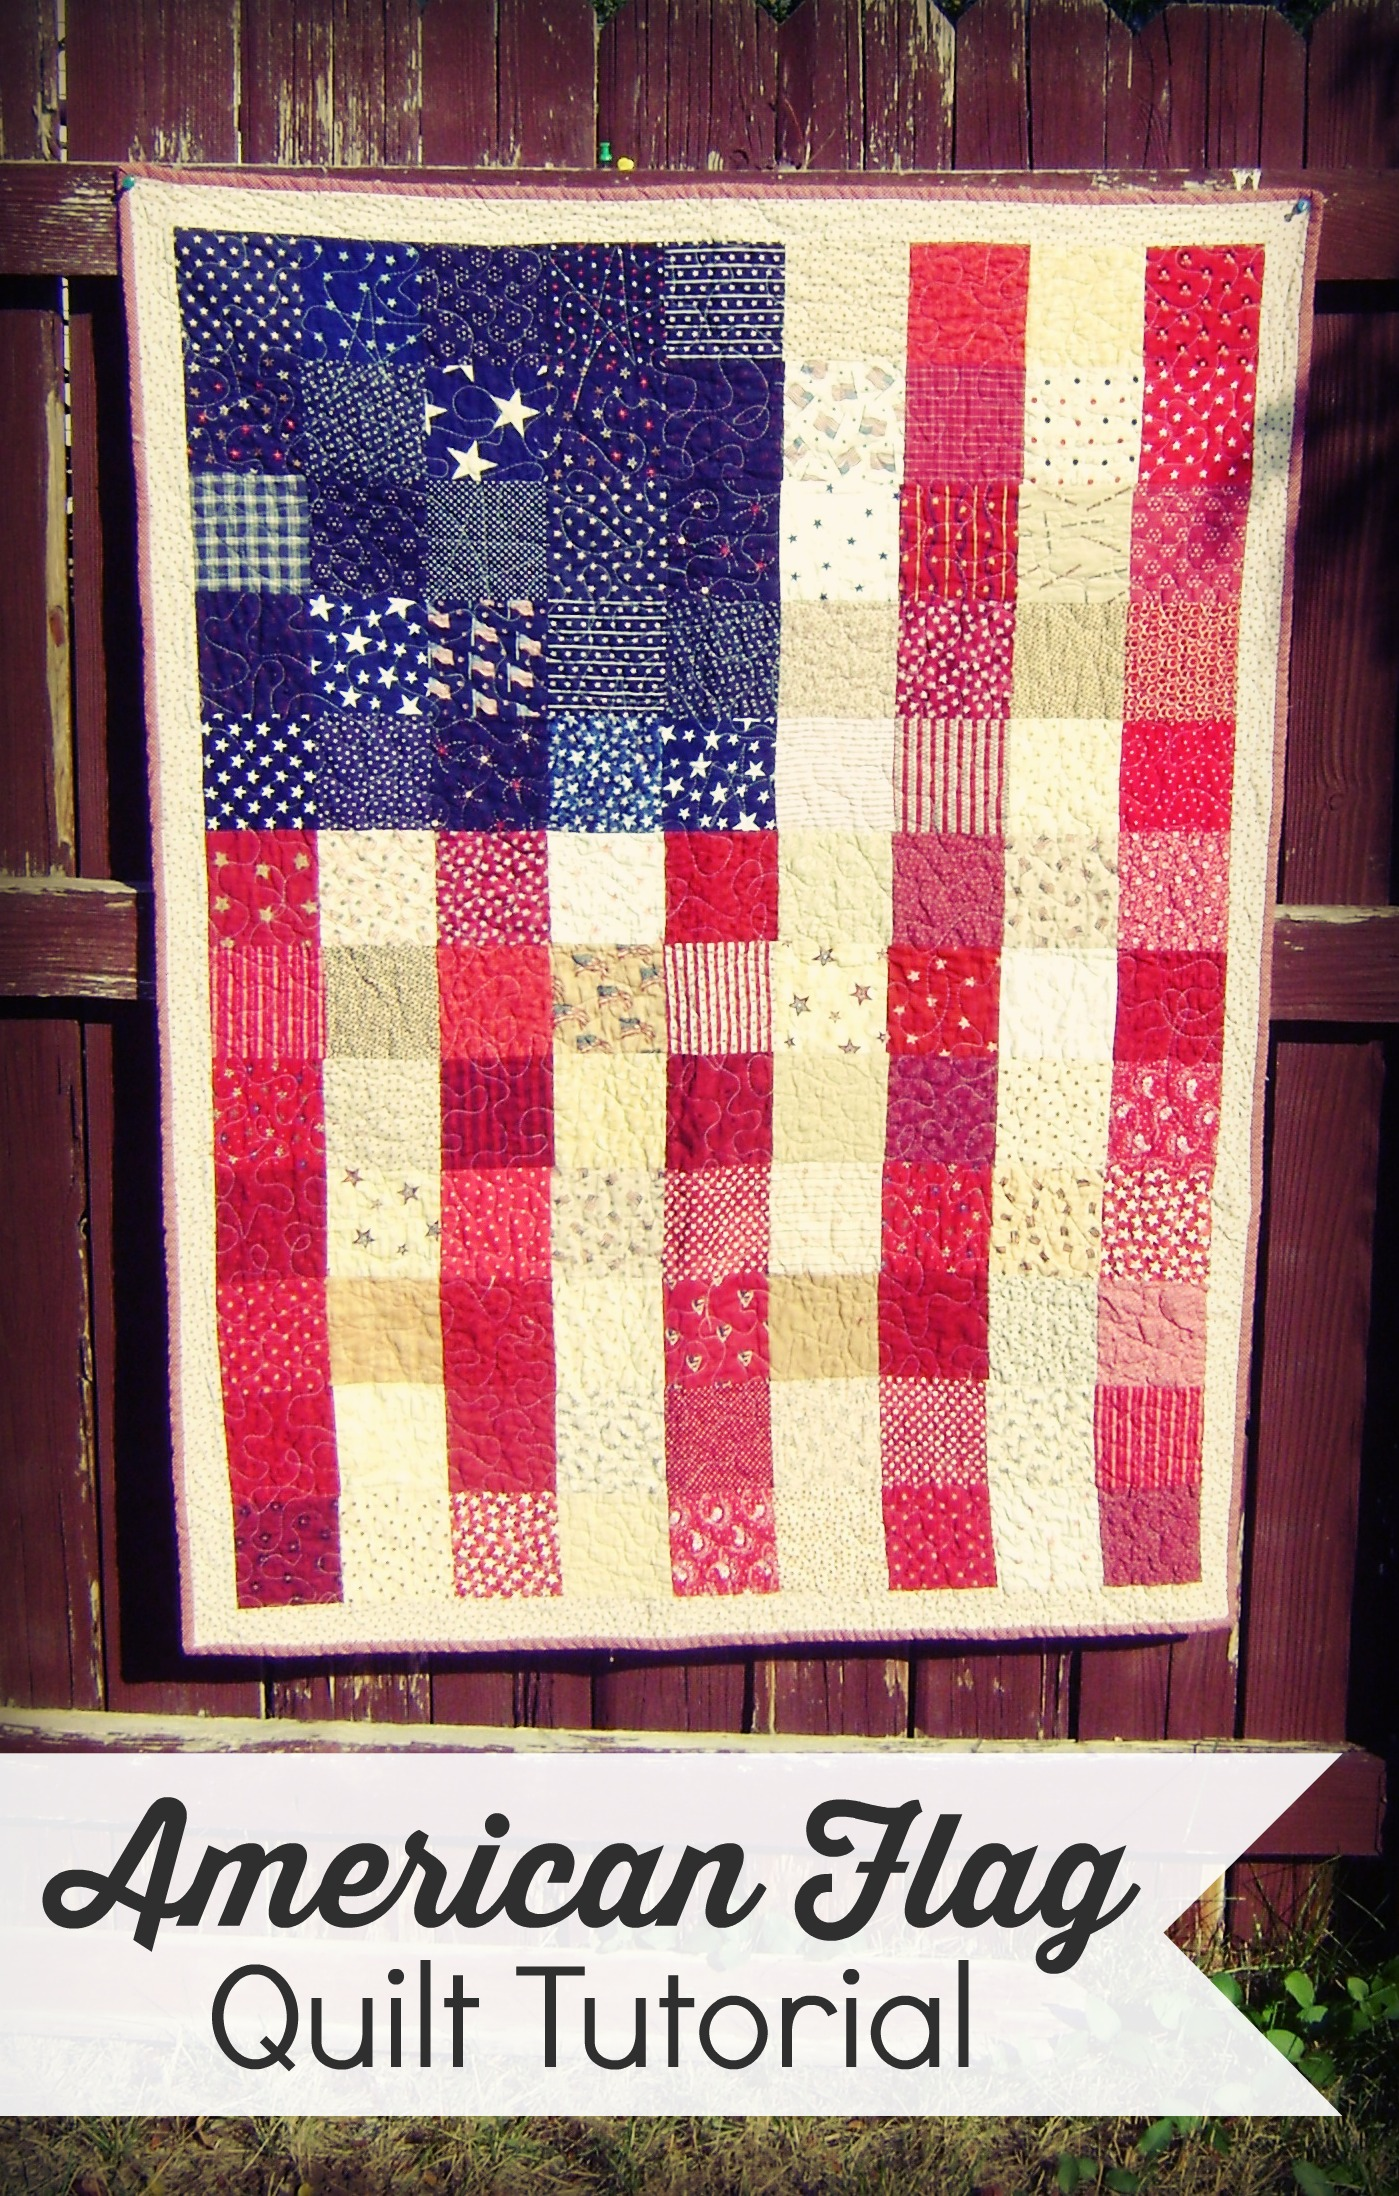 American Flag Quilt Tutorial Diary Of A Quilter A Quilt Blog